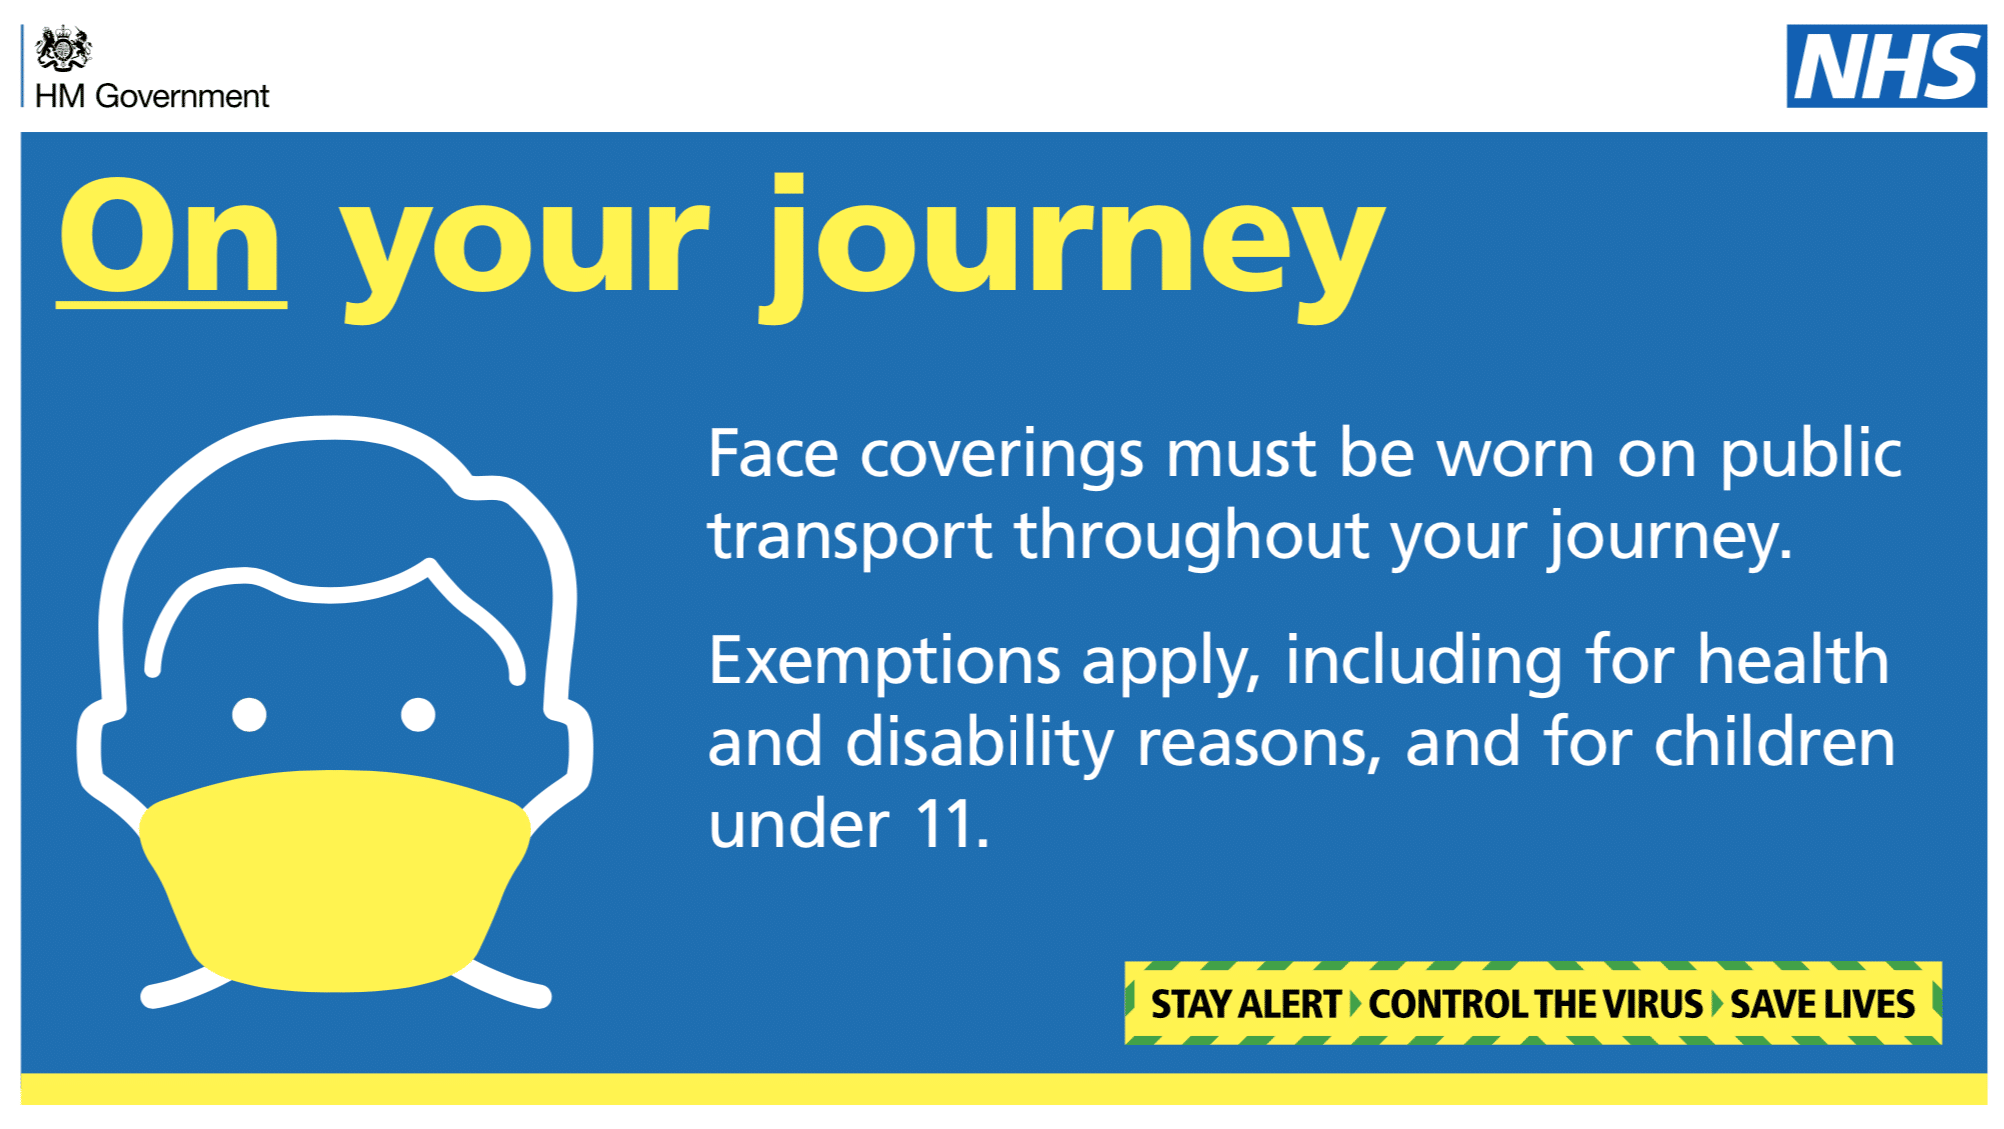 On your journey. Face coverings must be worn on public transport throughout your journey. Exemptions apply, including for health and disability reasons, and for children under 11. Stay alert. Control the virus. Save lives.